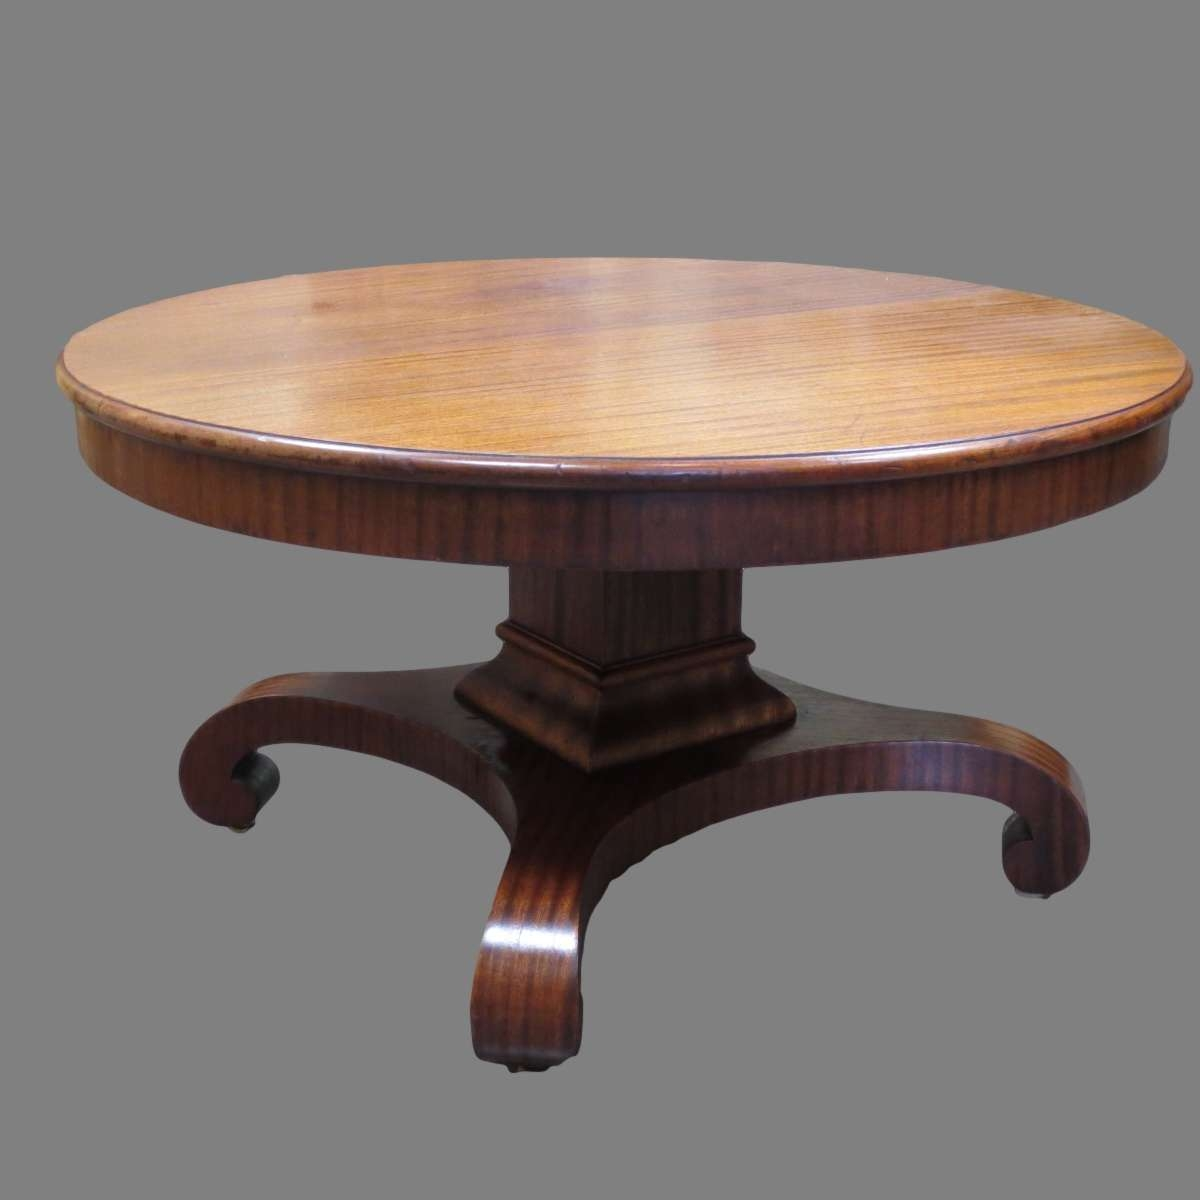 Coffee Tables Ideas: Awesome Antique Round Coffee Table Wood Intended For Current Round Oak Coffee Tables (View 5 of 20)